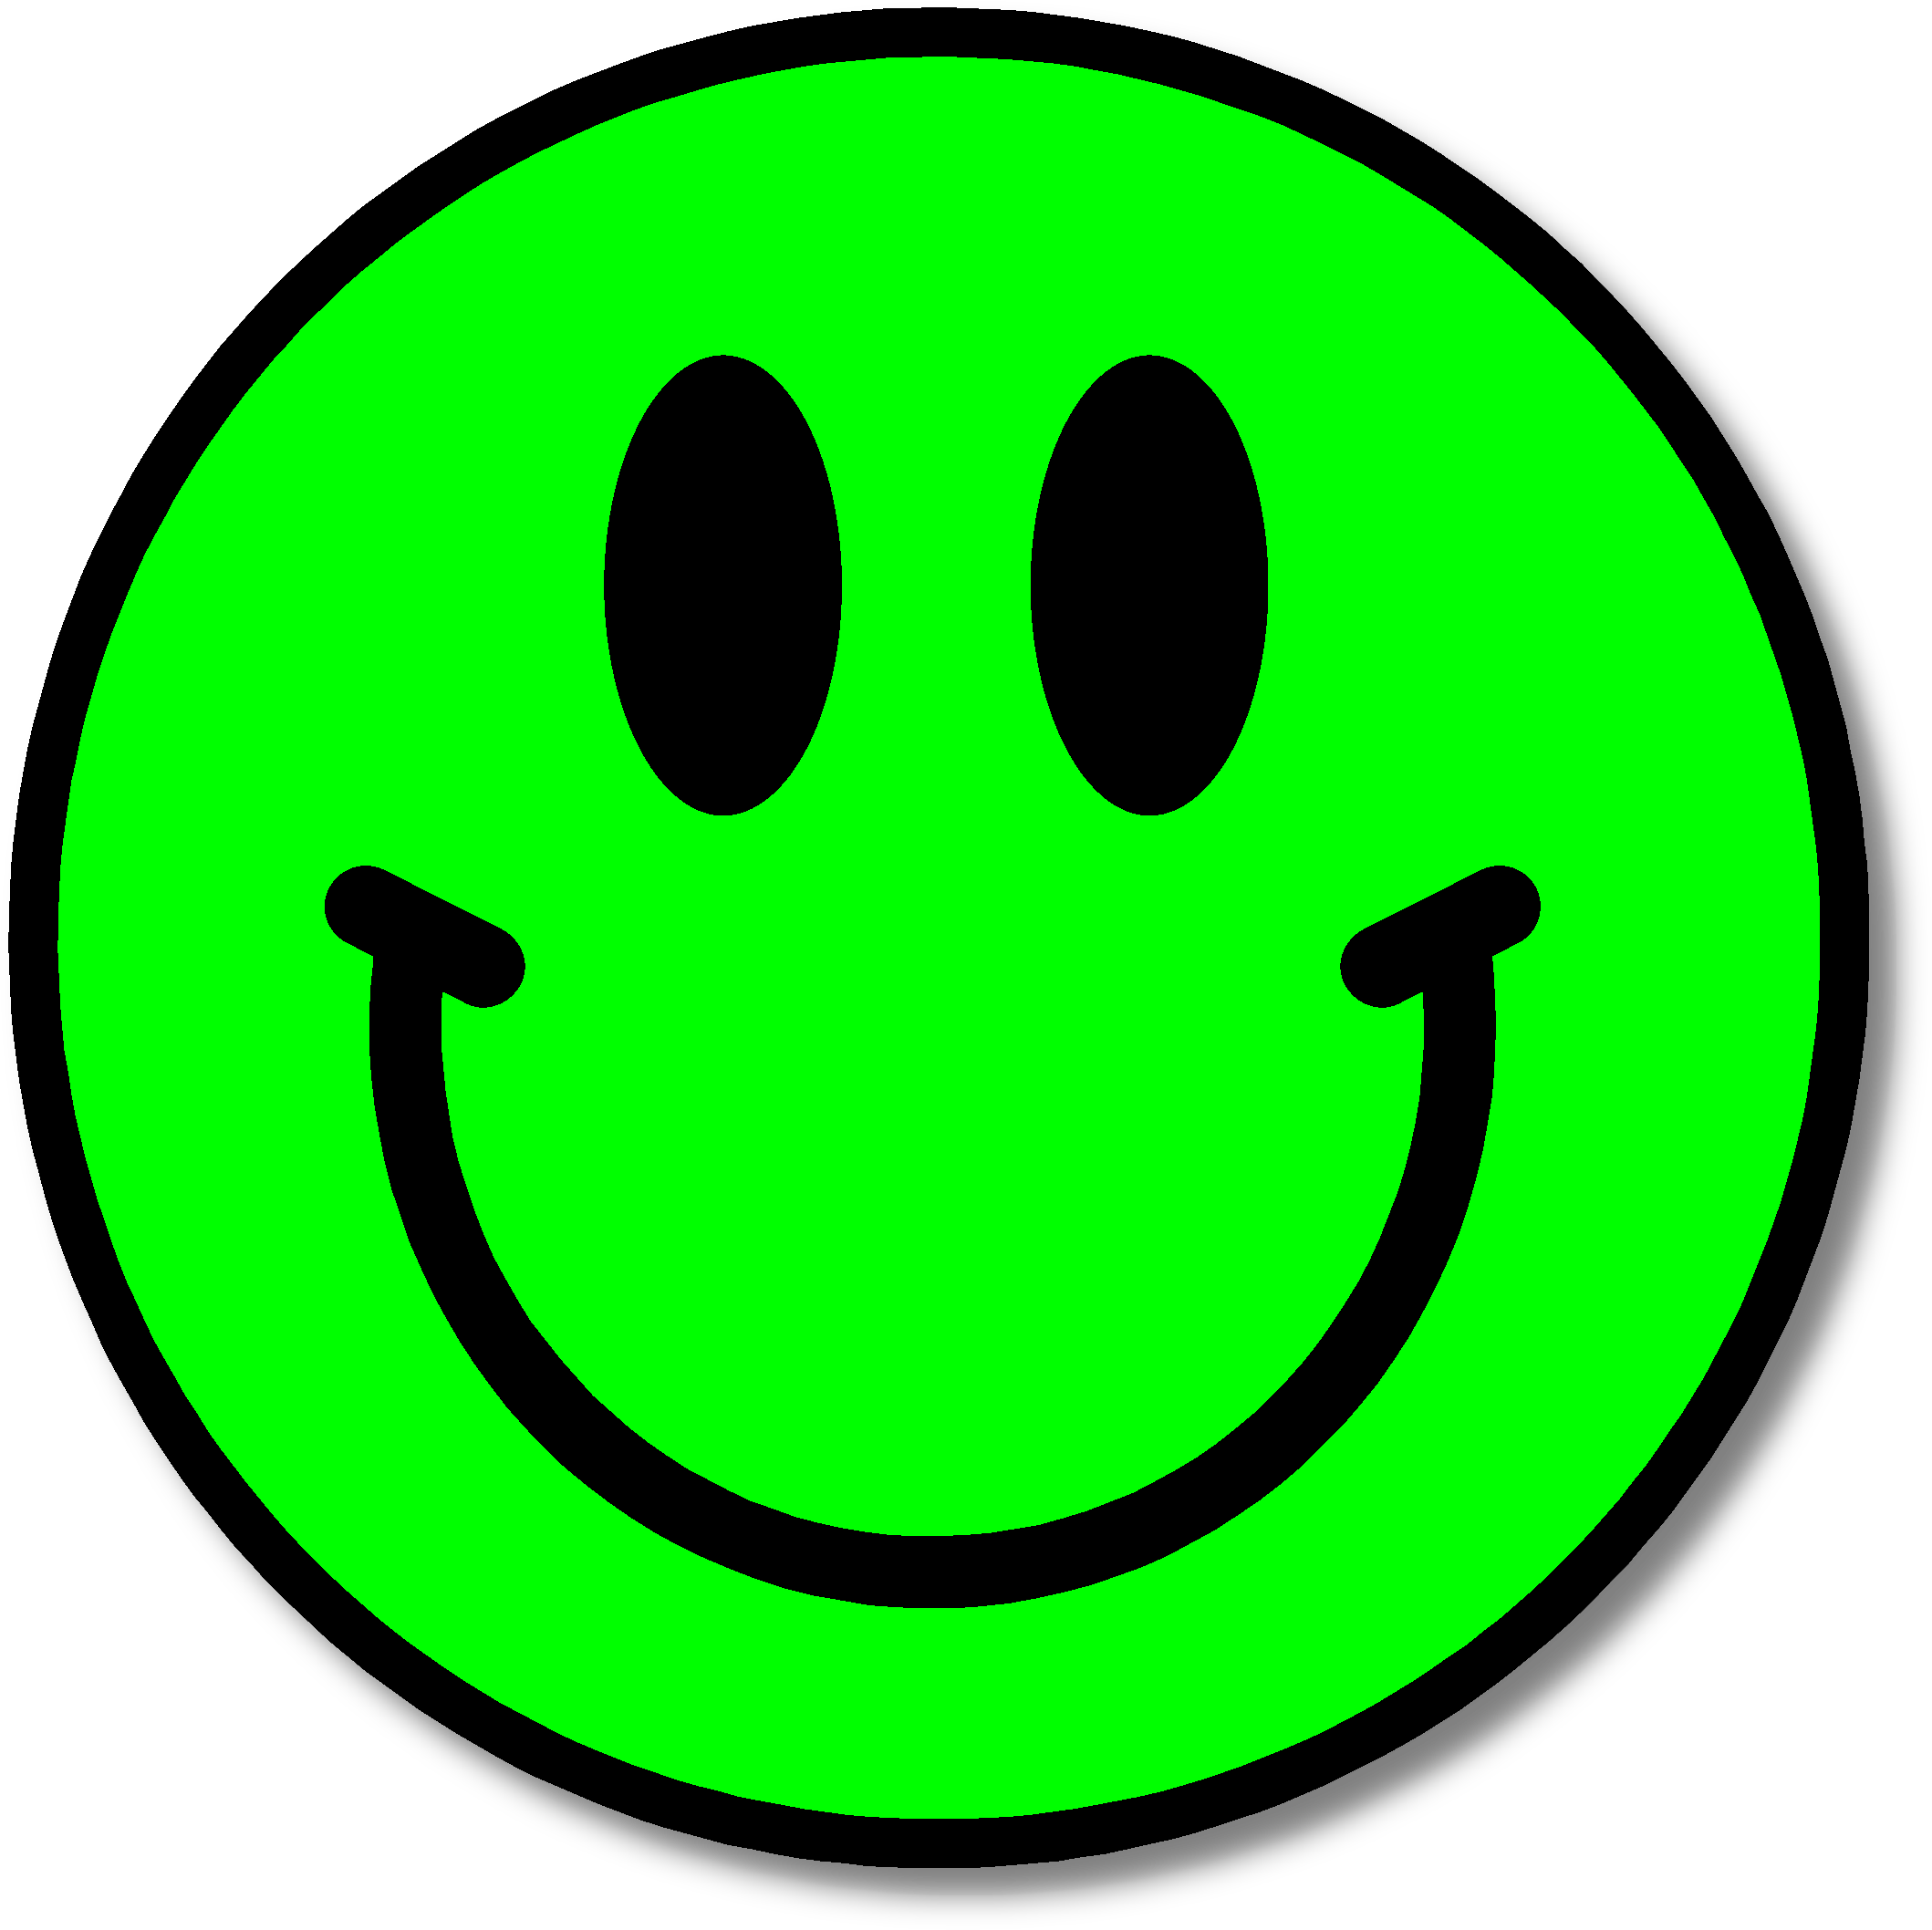 Happy face clipart png. Smiley at getdrawings com